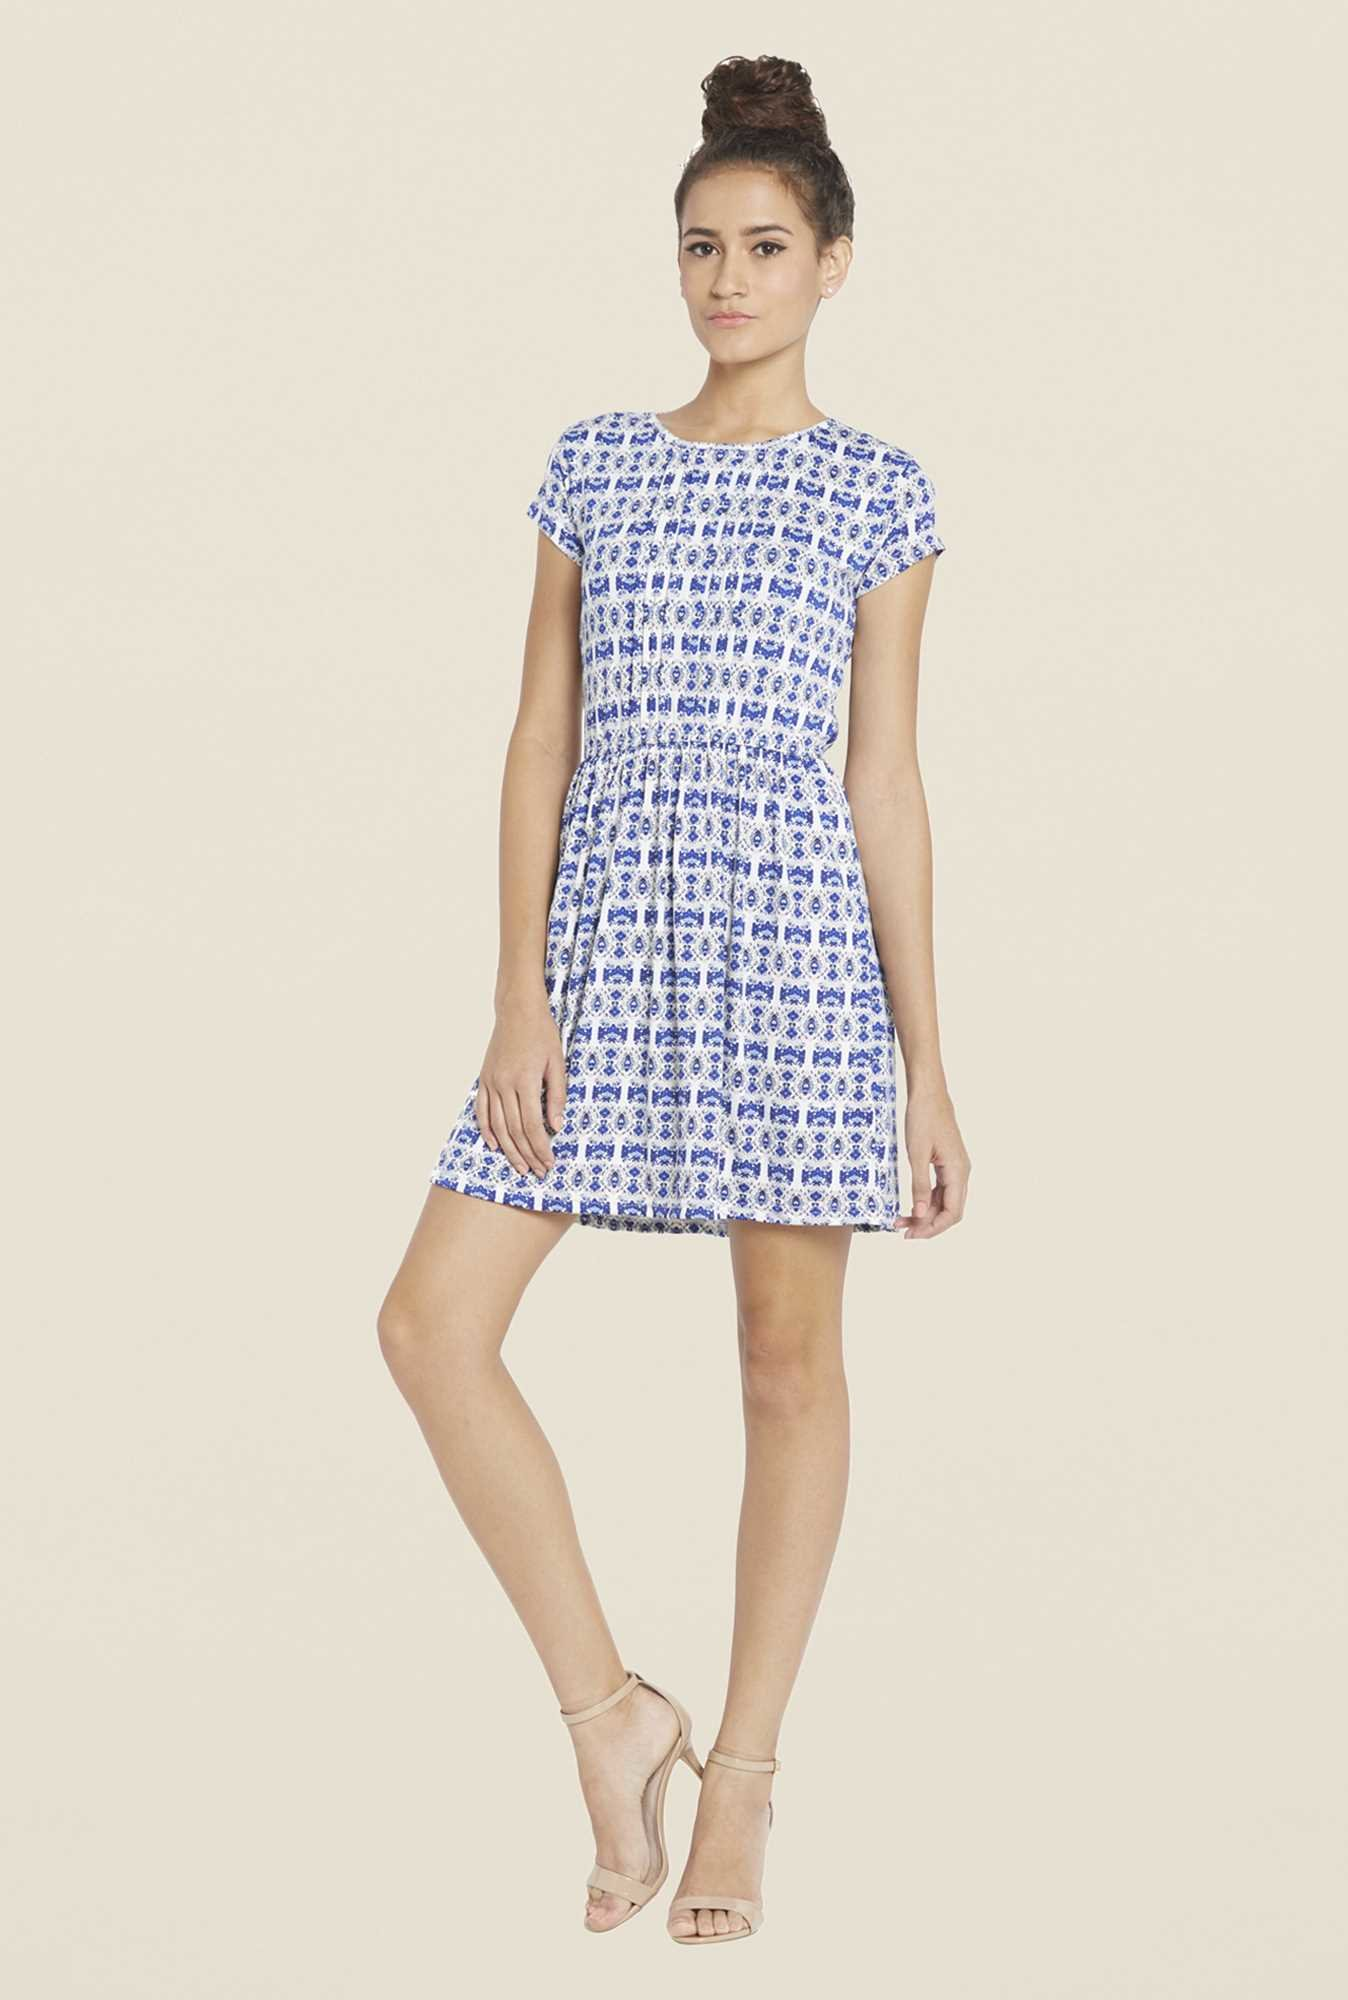 Globus Blue Skater Dress